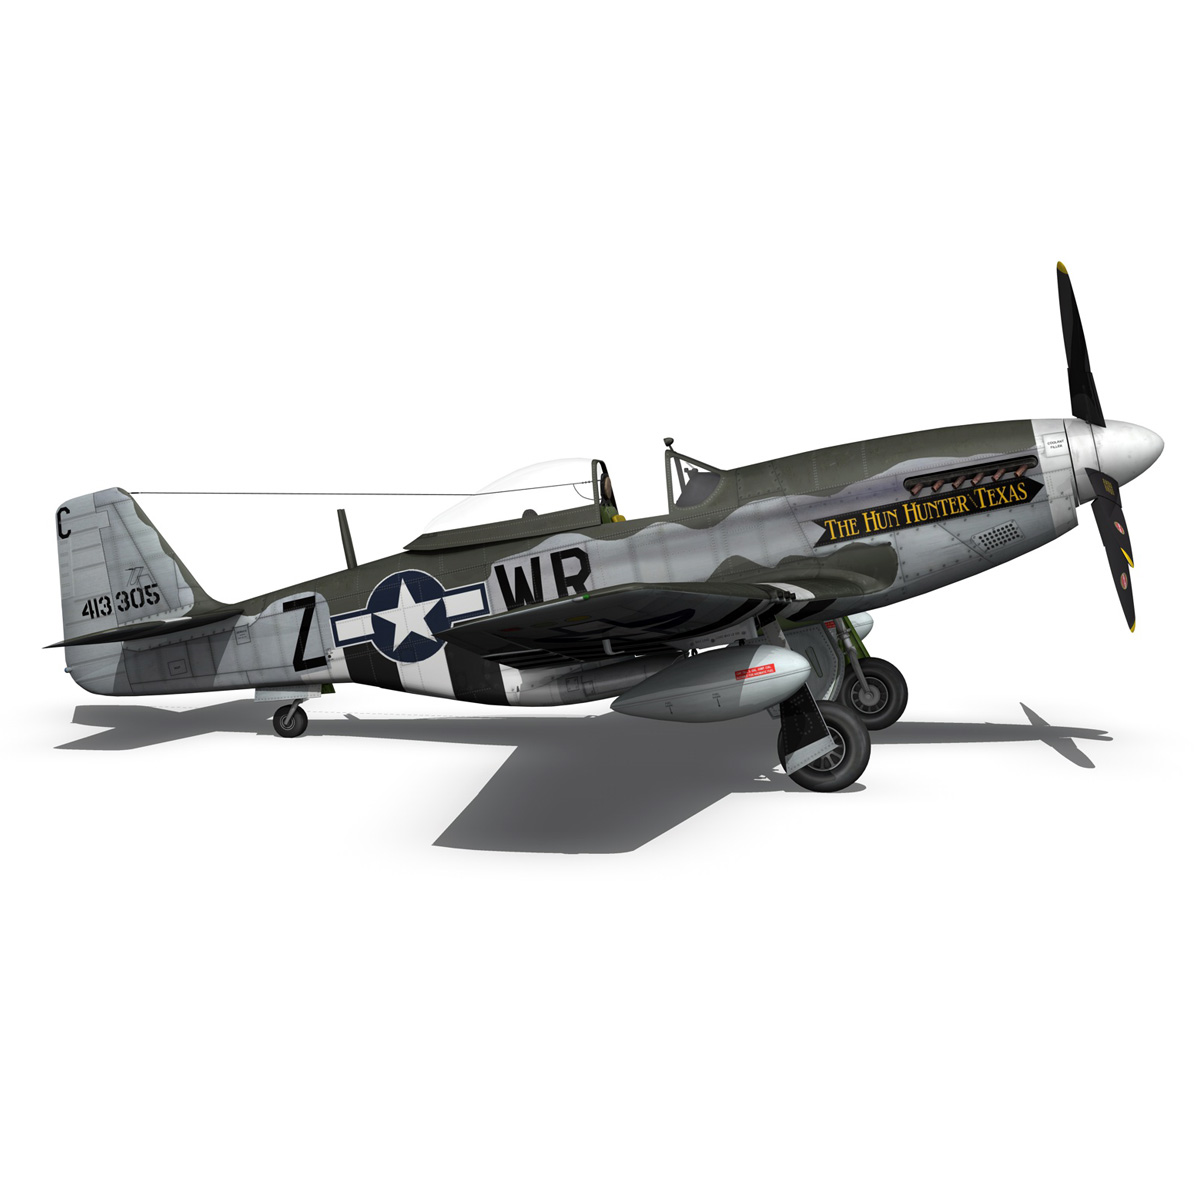 north american p-51d – the hun hunter / texas 3d model fbx c4d lwo obj 282541